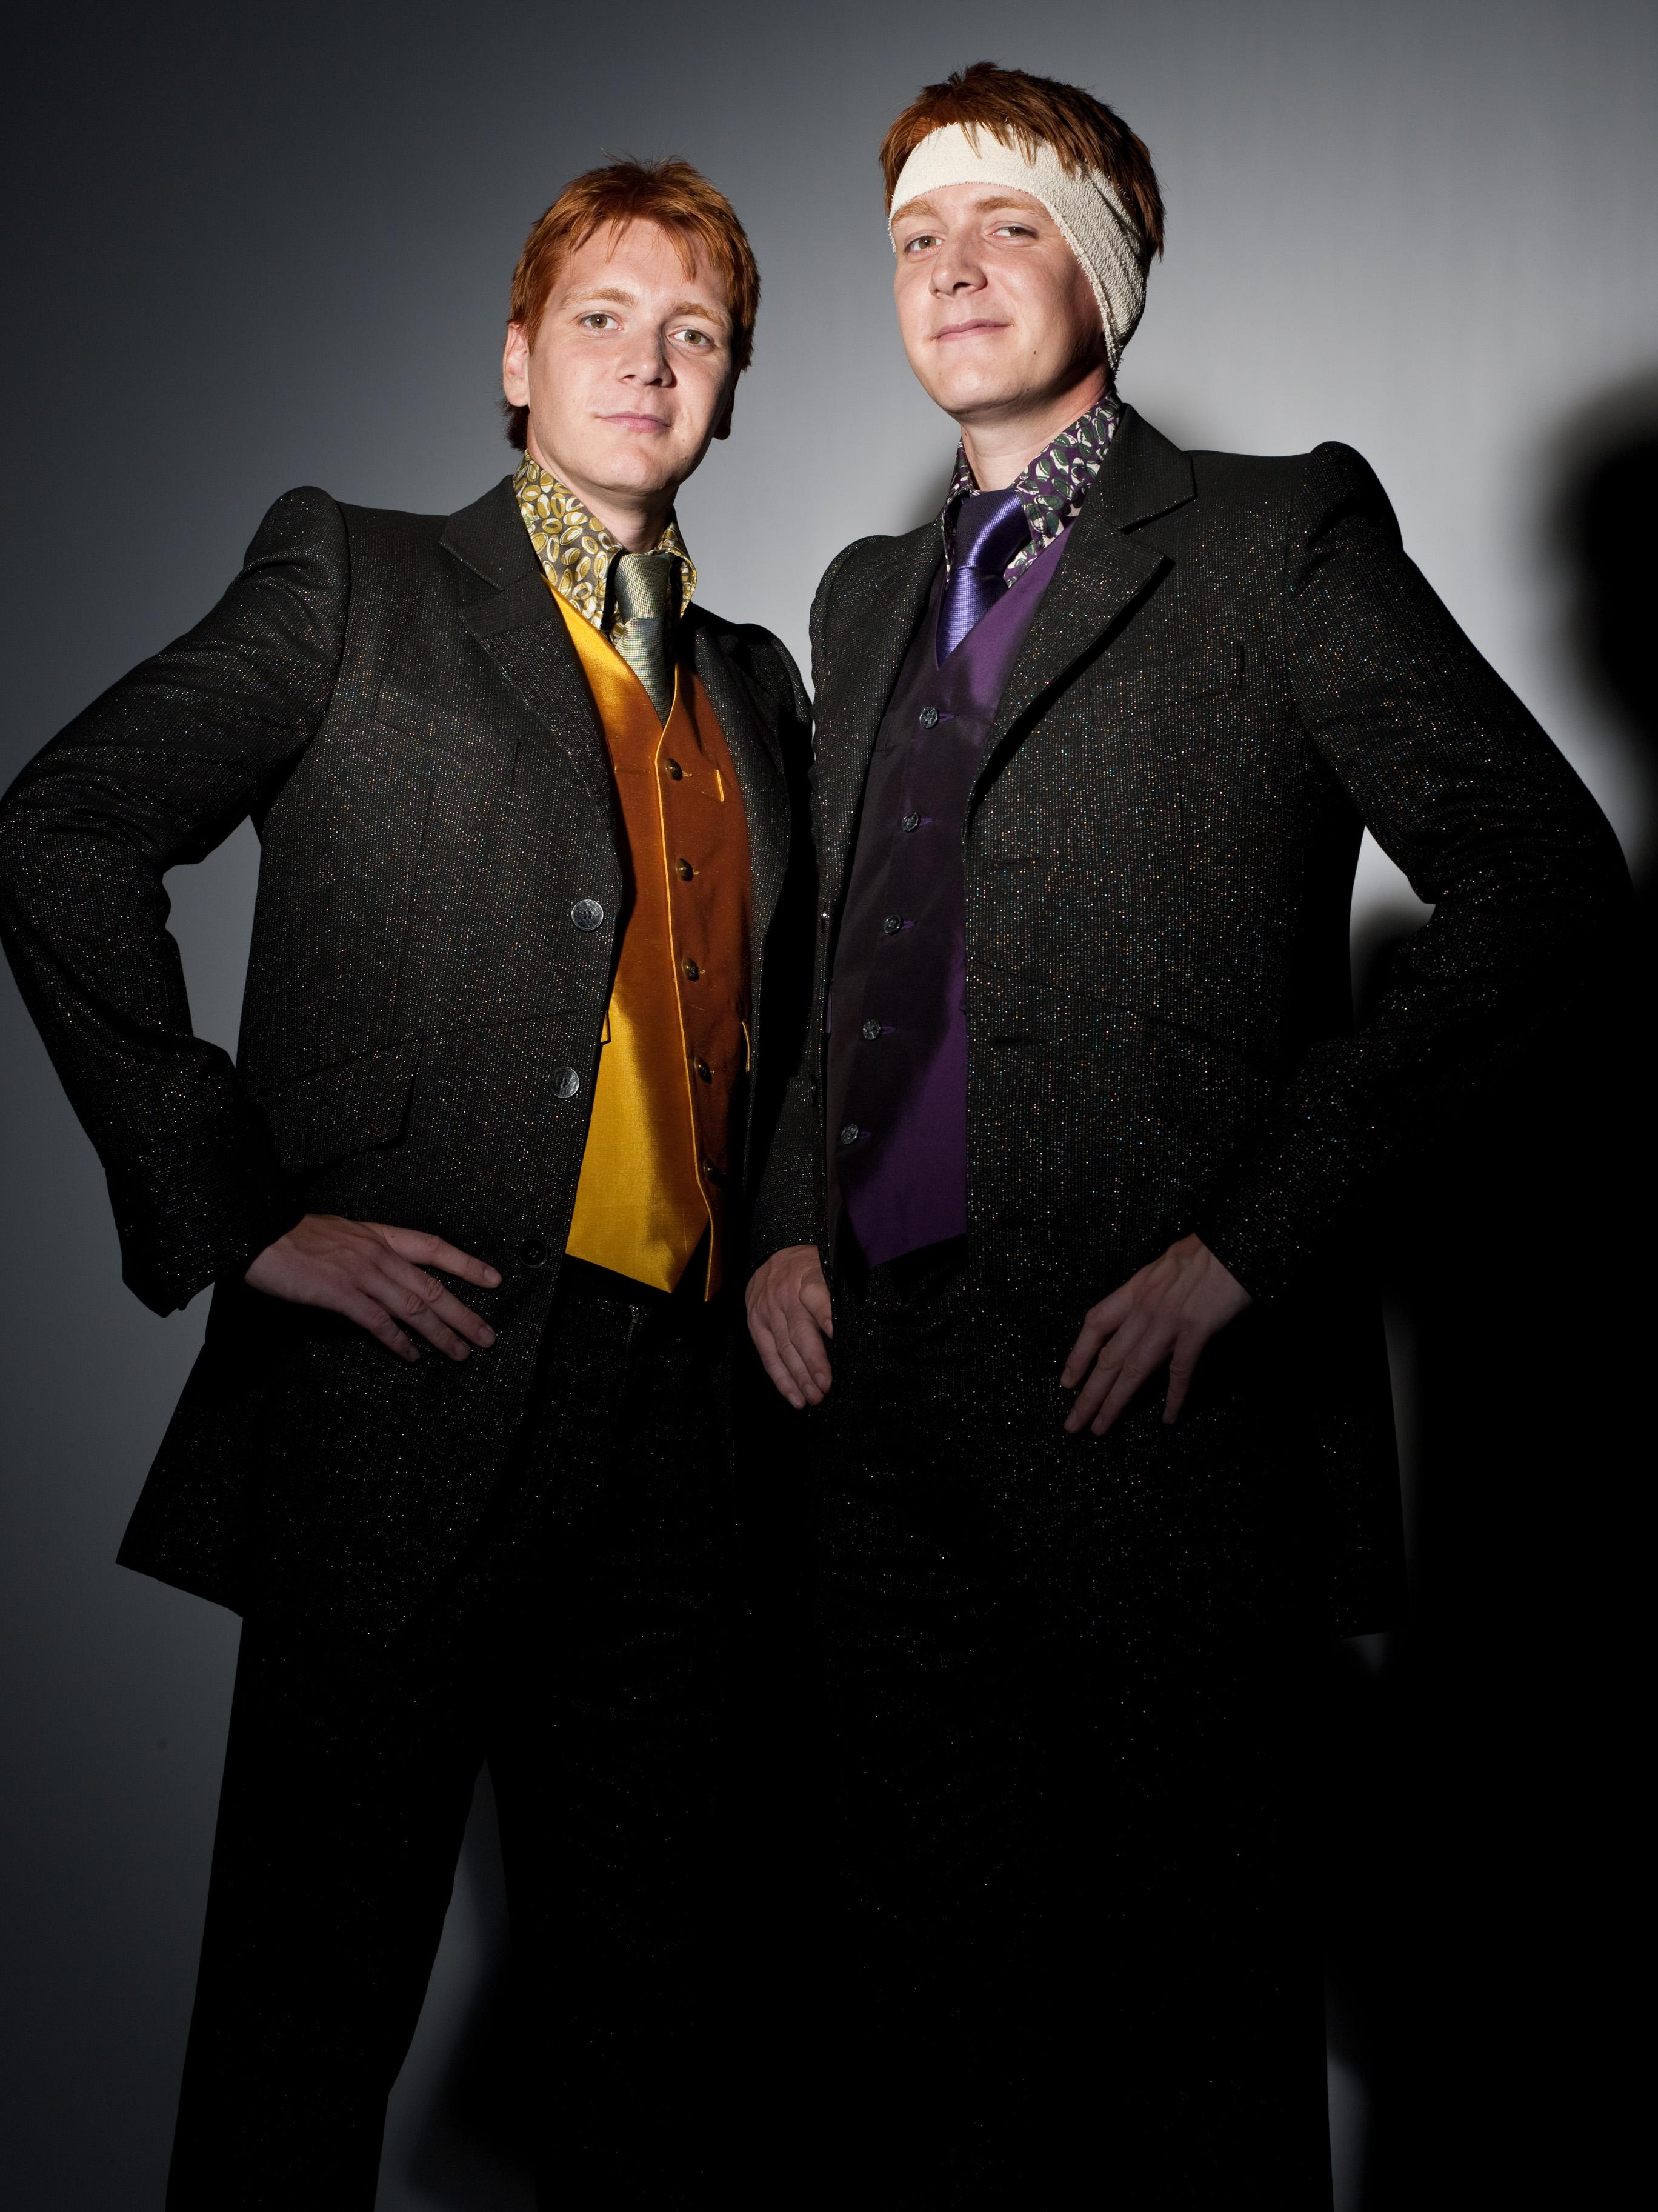 http://images1.wikia.nocookie.net/__cb20110817190945/harrypotter/ru/images/f/f6/97e36fa59a17.jpg